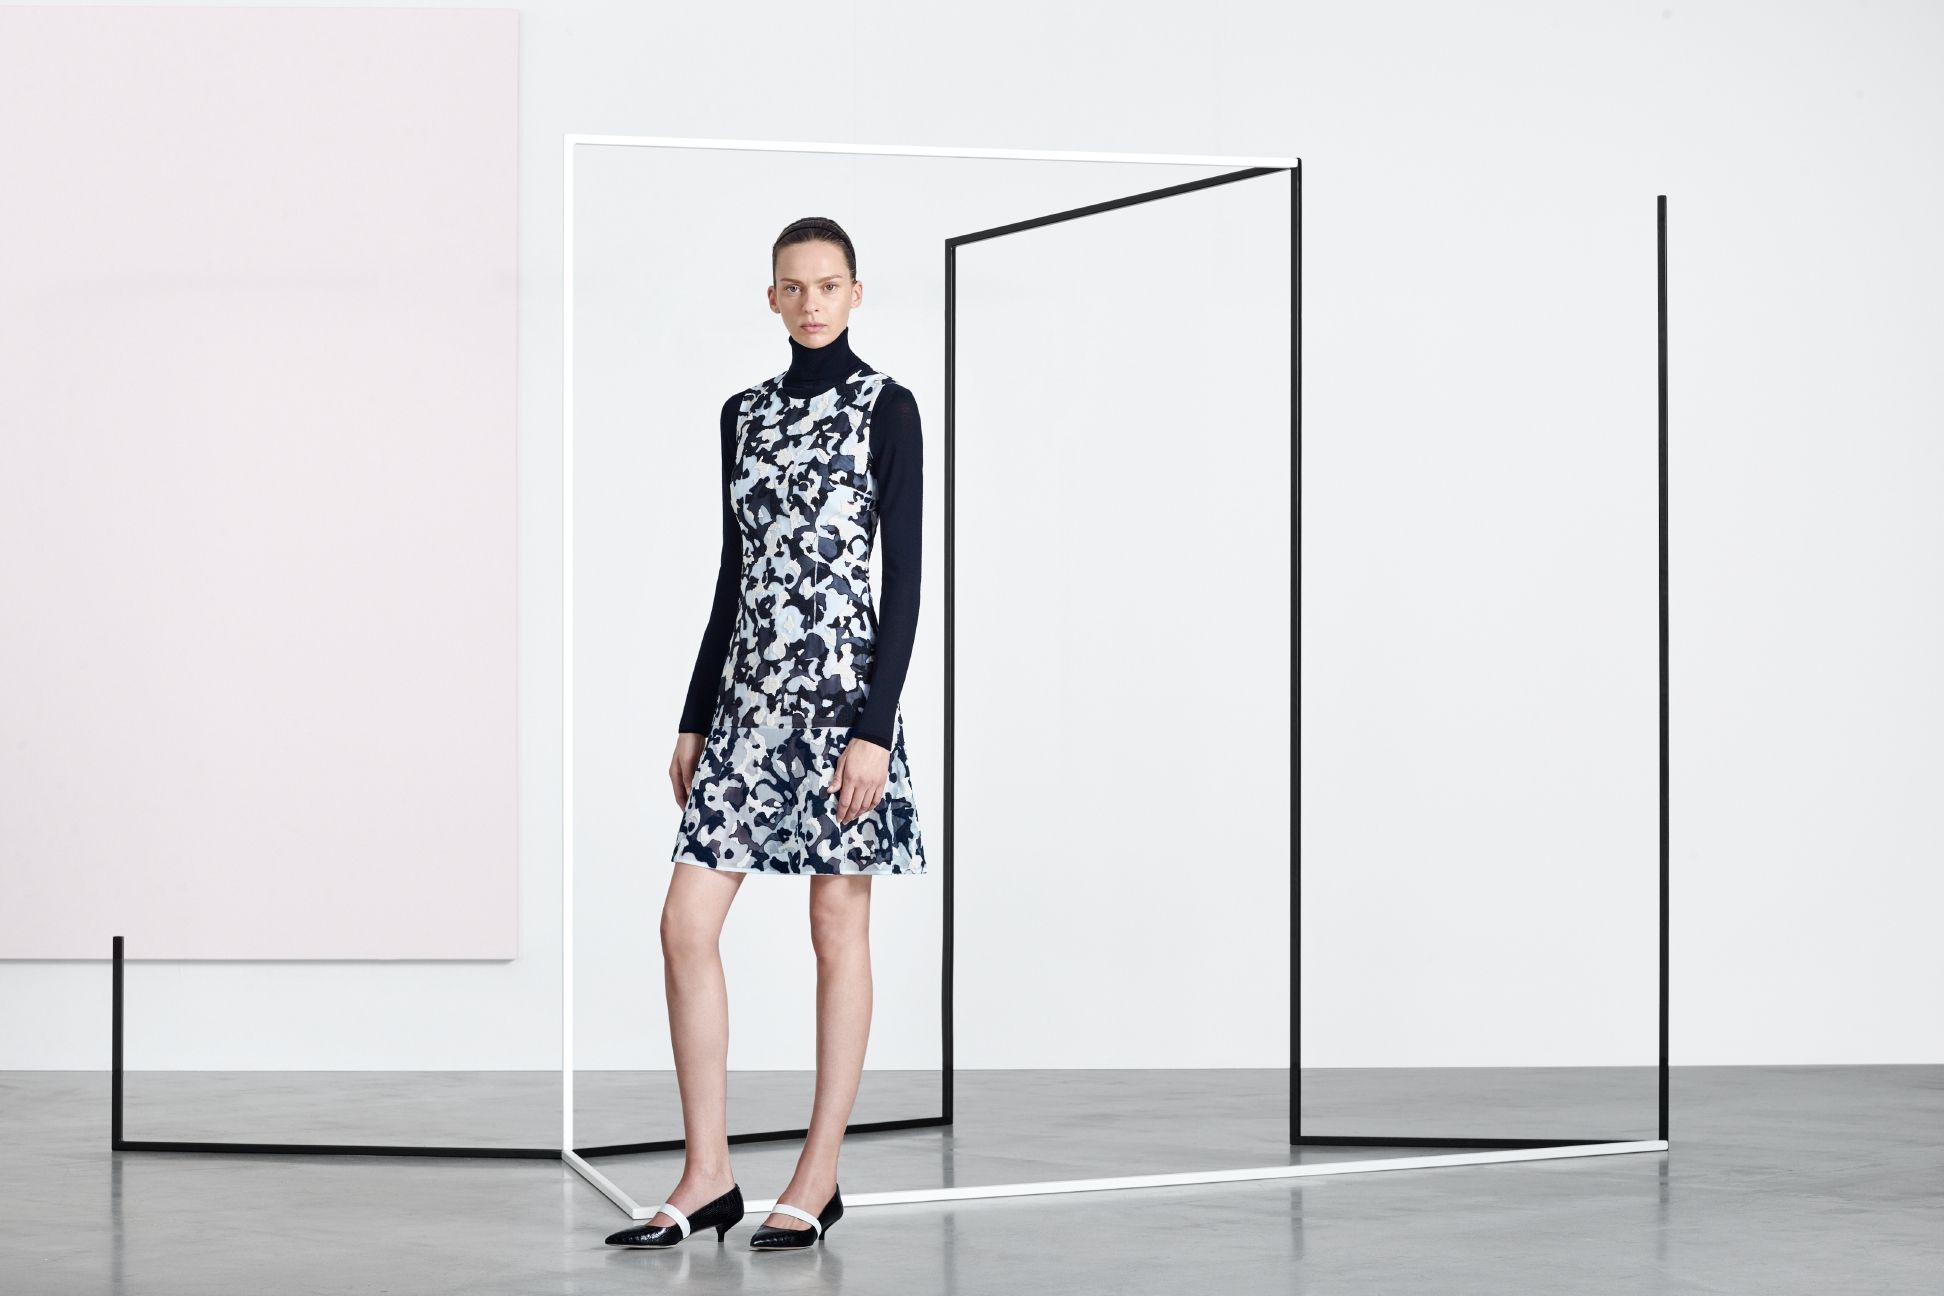 Bold new patterns amp up a feminine ensemble in the BOSS Womenswear pre-Fall 2016 lookbook